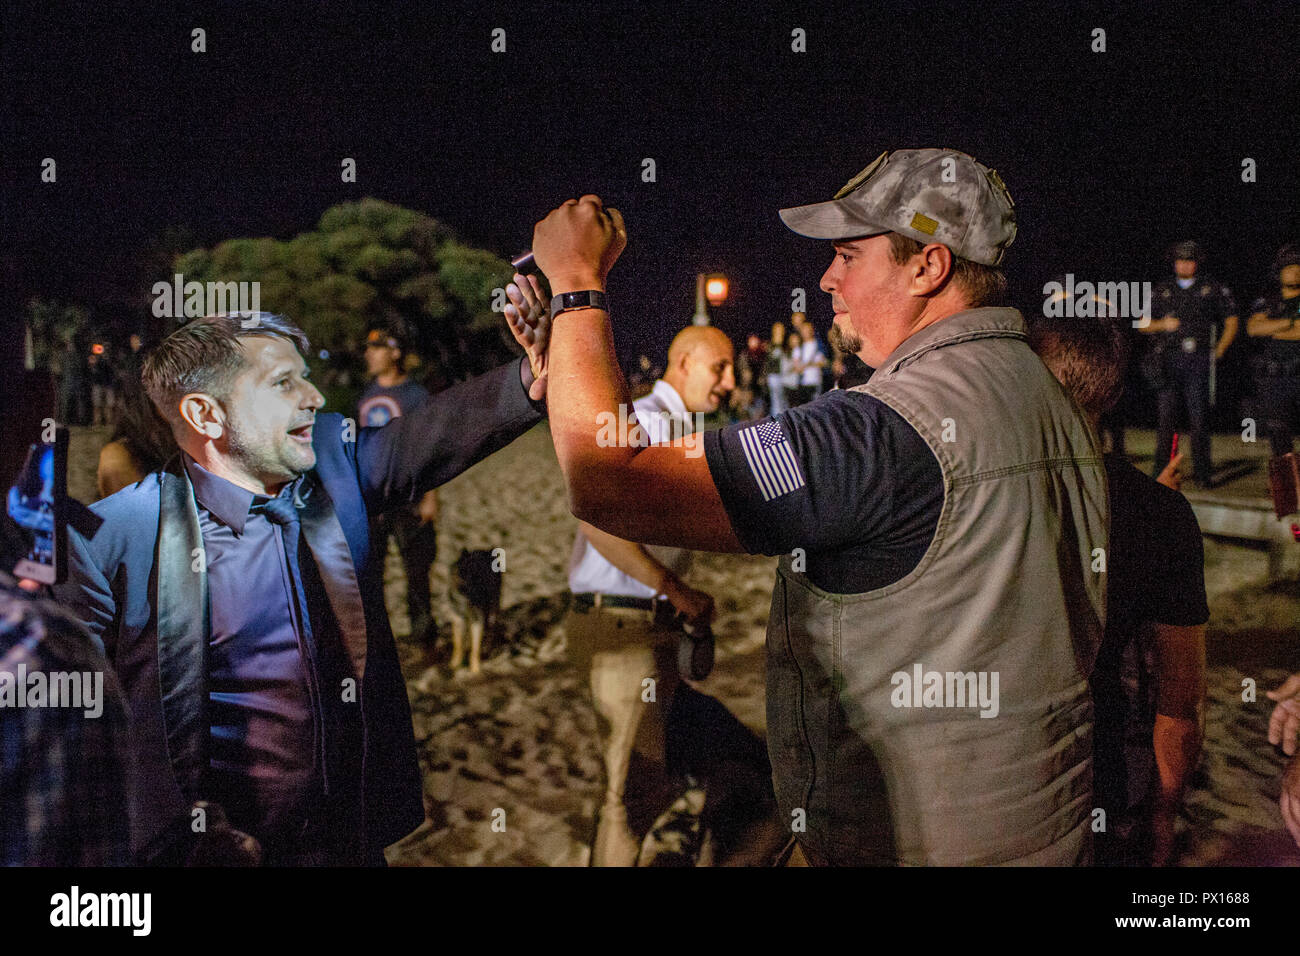 Right-wing and left-wing demonstrators confront each other at a political rally at Laguna Beach, CA's Main Beach. - Stock Image